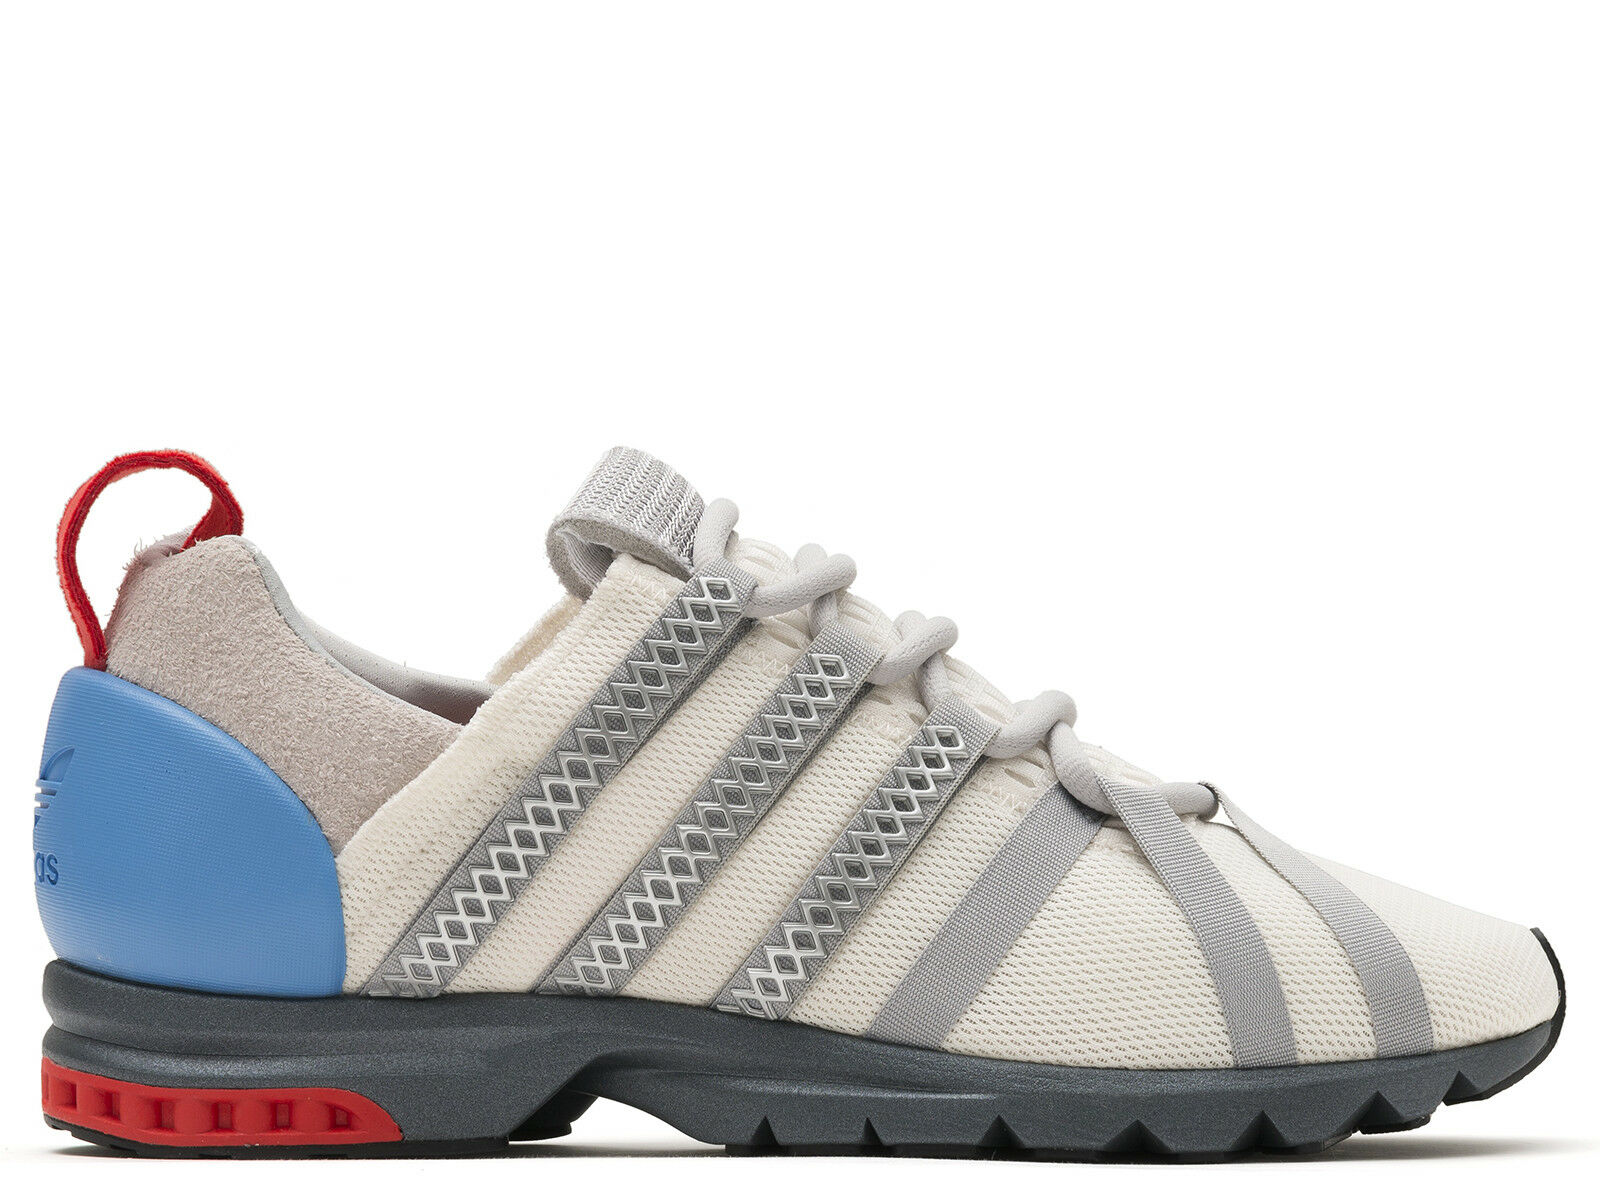 Brand New adidas Adistar Comp ADV Men's Athletic Fashion Sneakers [BY9836]